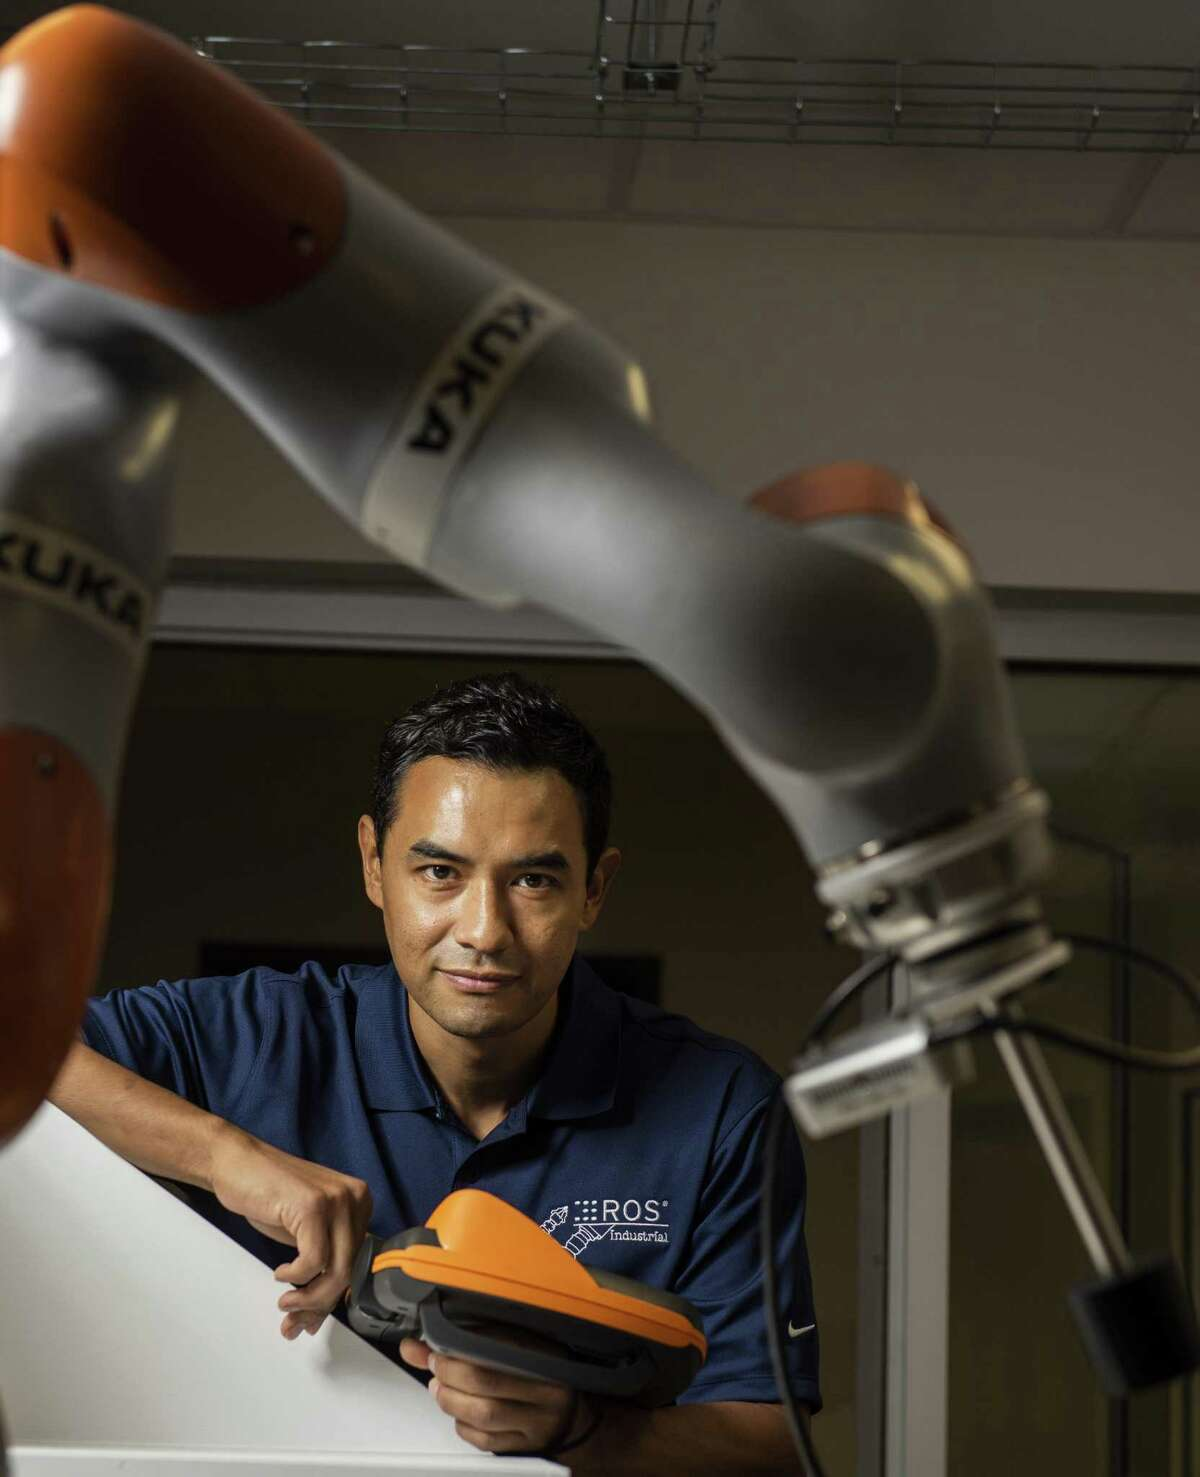 Southwest Research Institute broke ground Monday on the Supercritical Transformational Electric Power (STEP) pilot plant. It is one in a long string of innovative projects from the institute, including its work on collaborative robots, shown here with research engineer Jorge Nicho on Sept. 7.